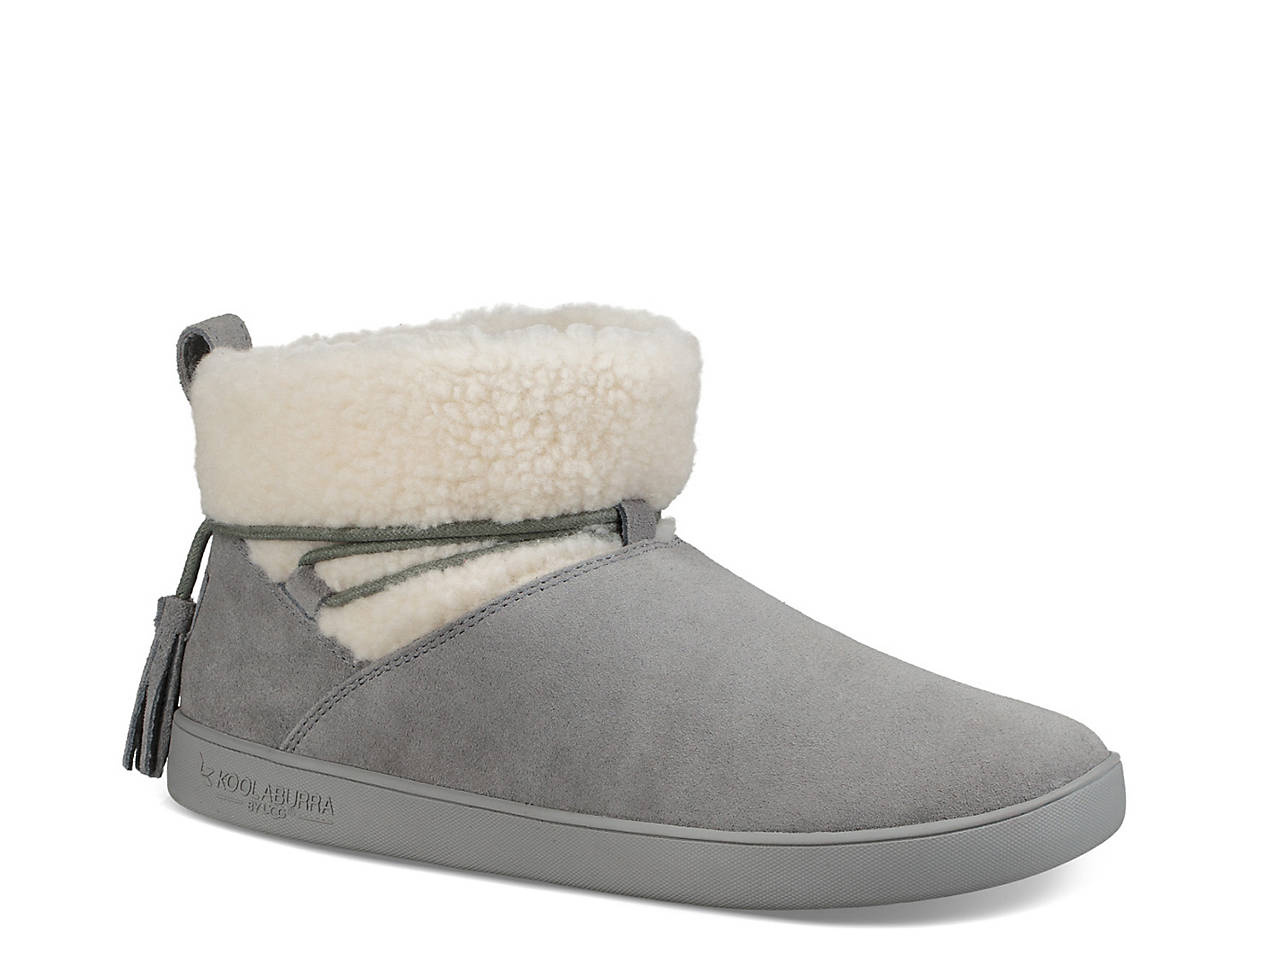 094465315be4 Koolaburra by UGG Isana Bootie Women s Shoes